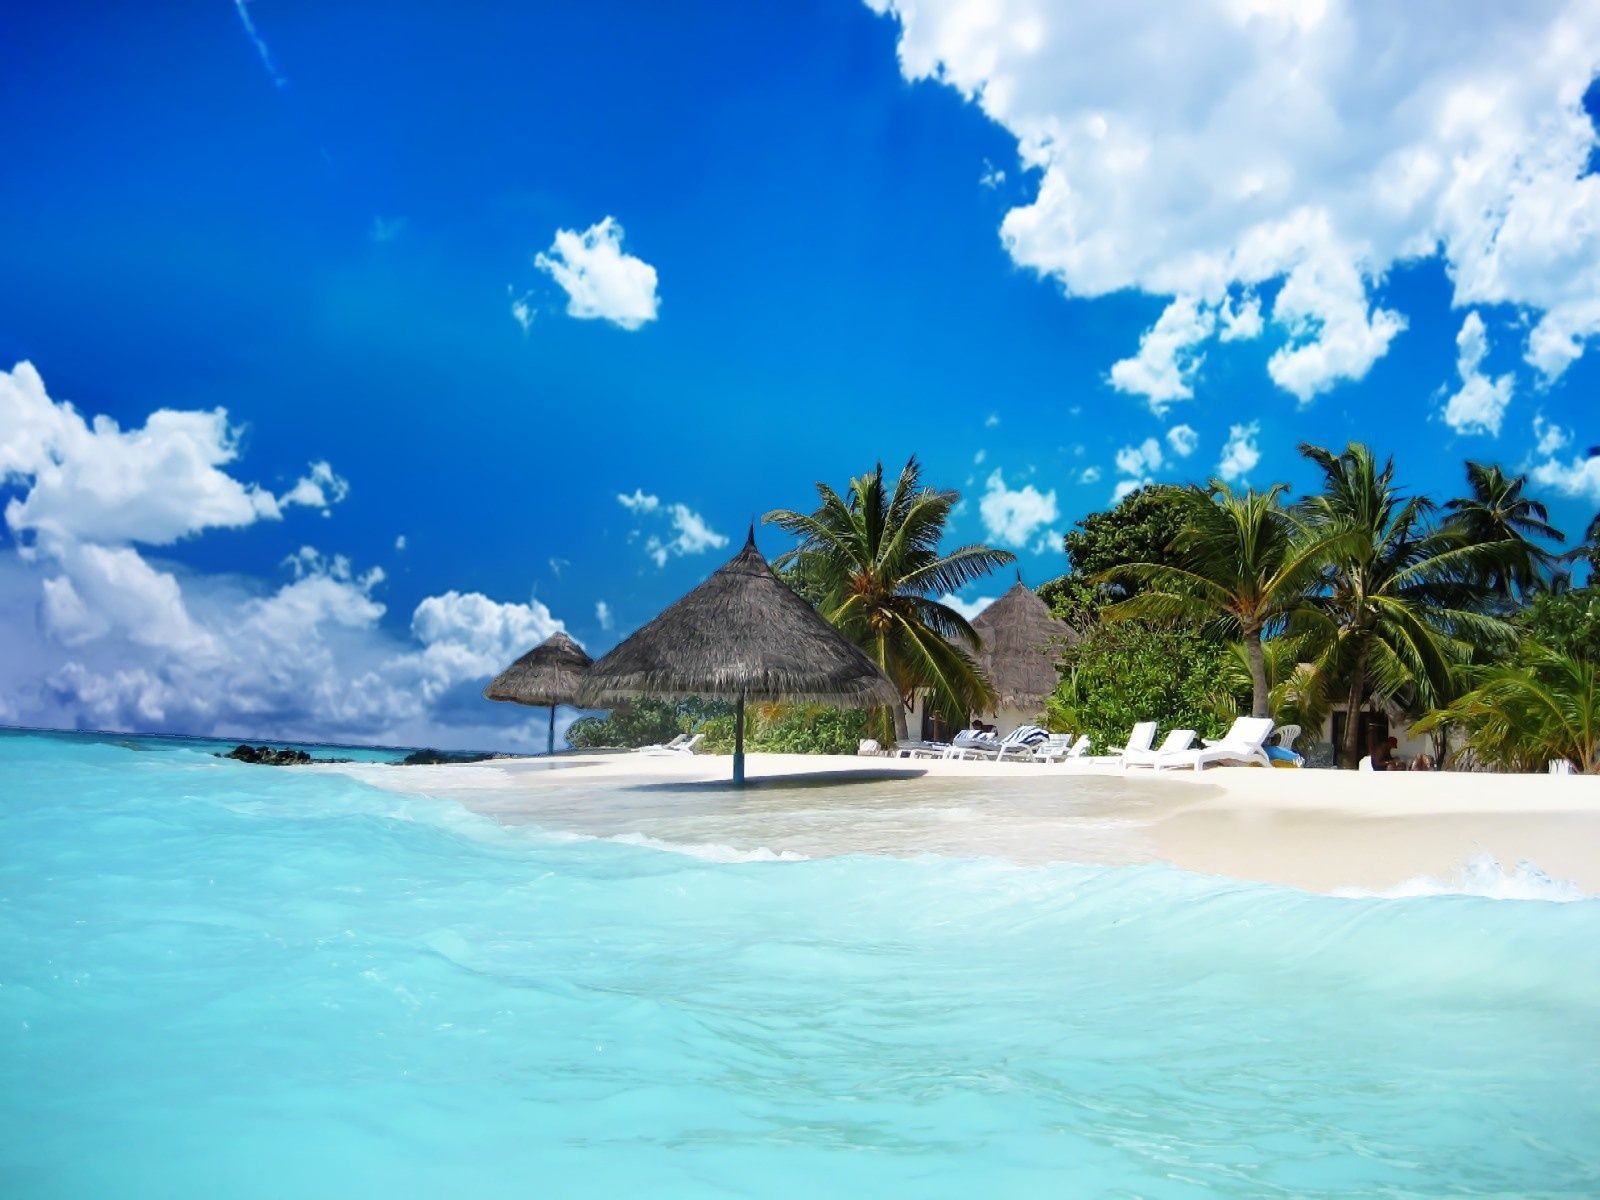 Paradise Beach Wallpaper 652 HD Wallpaper 3D Desktop Backgrounds 1600x1200